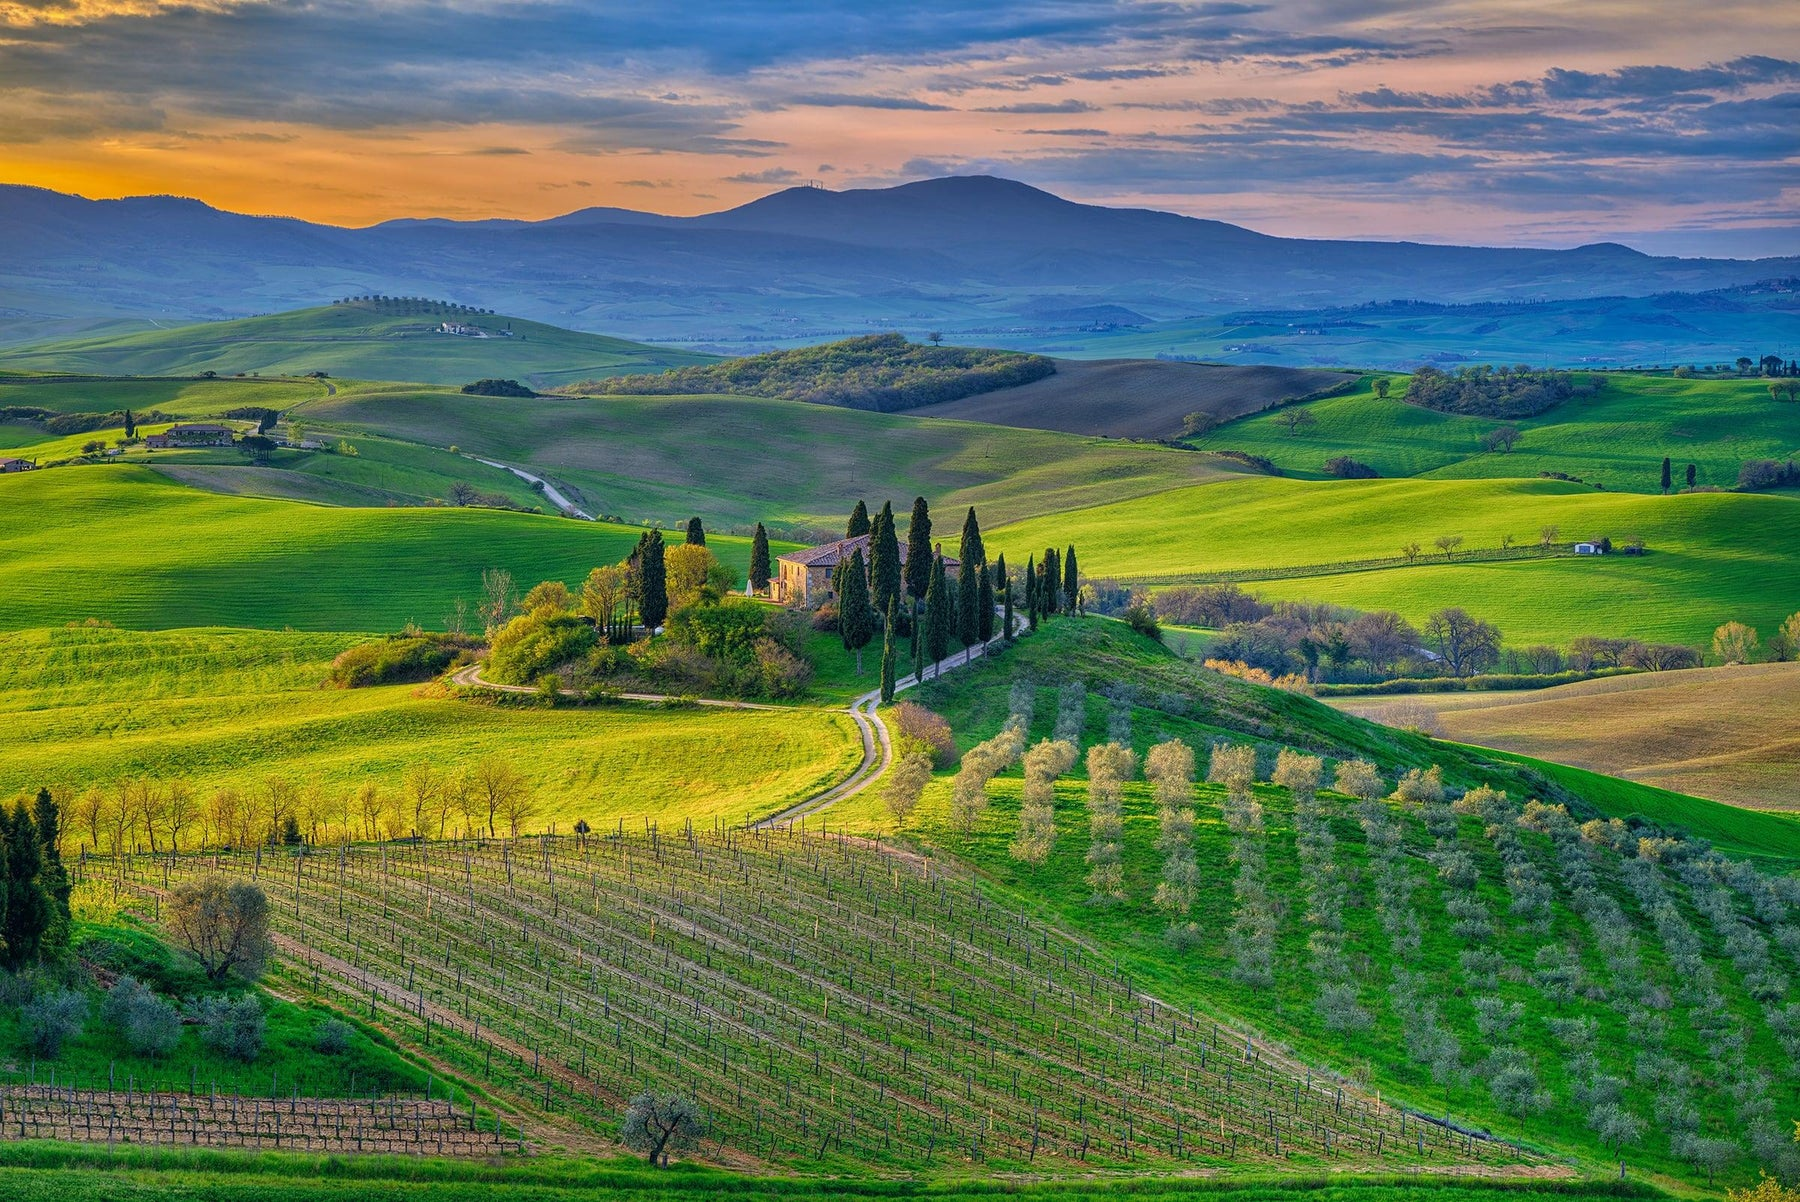 View from a hillside looking over old stone homes surrounded by cypress trees vineyards and green fields in Tuscany Italy